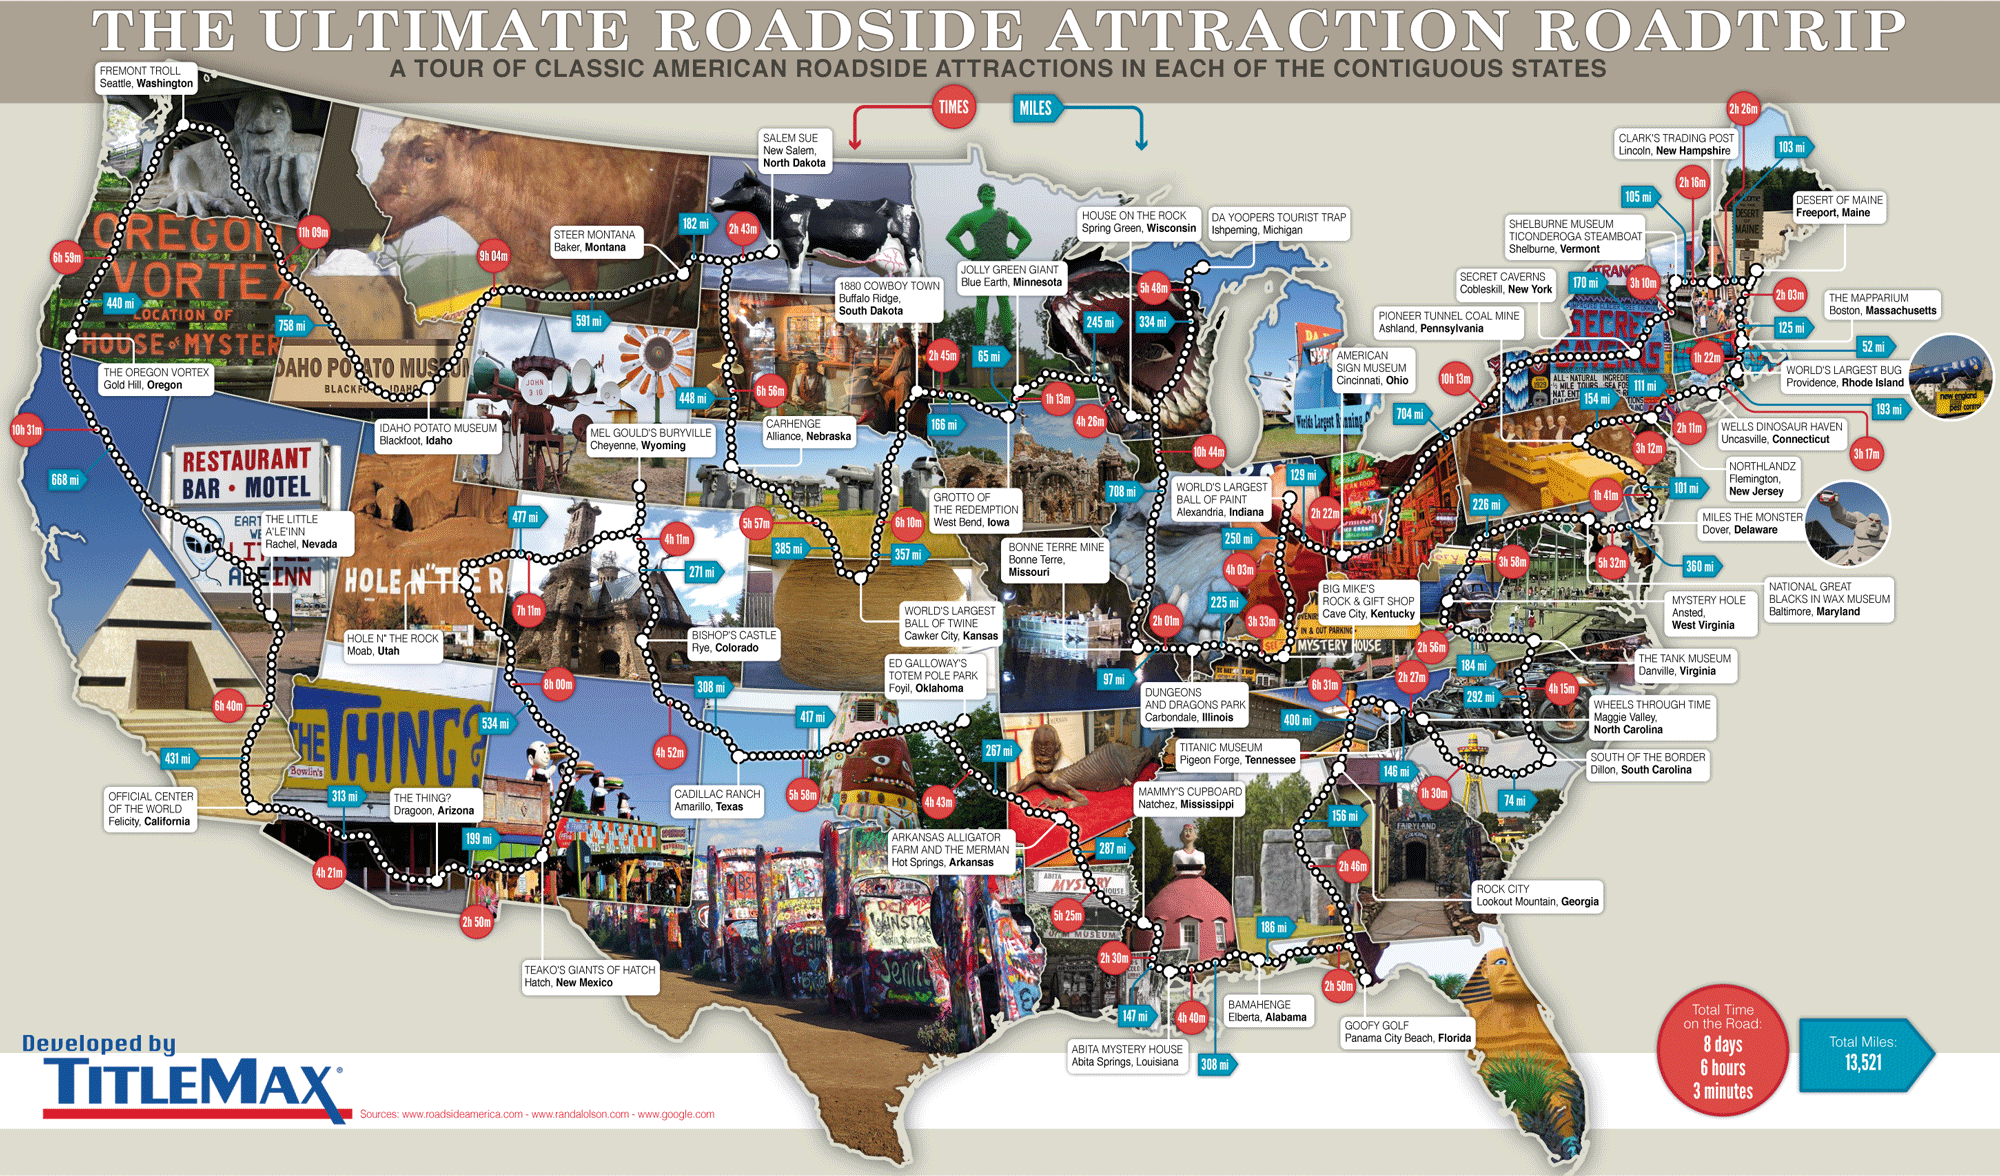 Roadside Attractions Map 79 Weird Roadside Attractions Road Trip[INFOGRAPHIC]   TitleMax